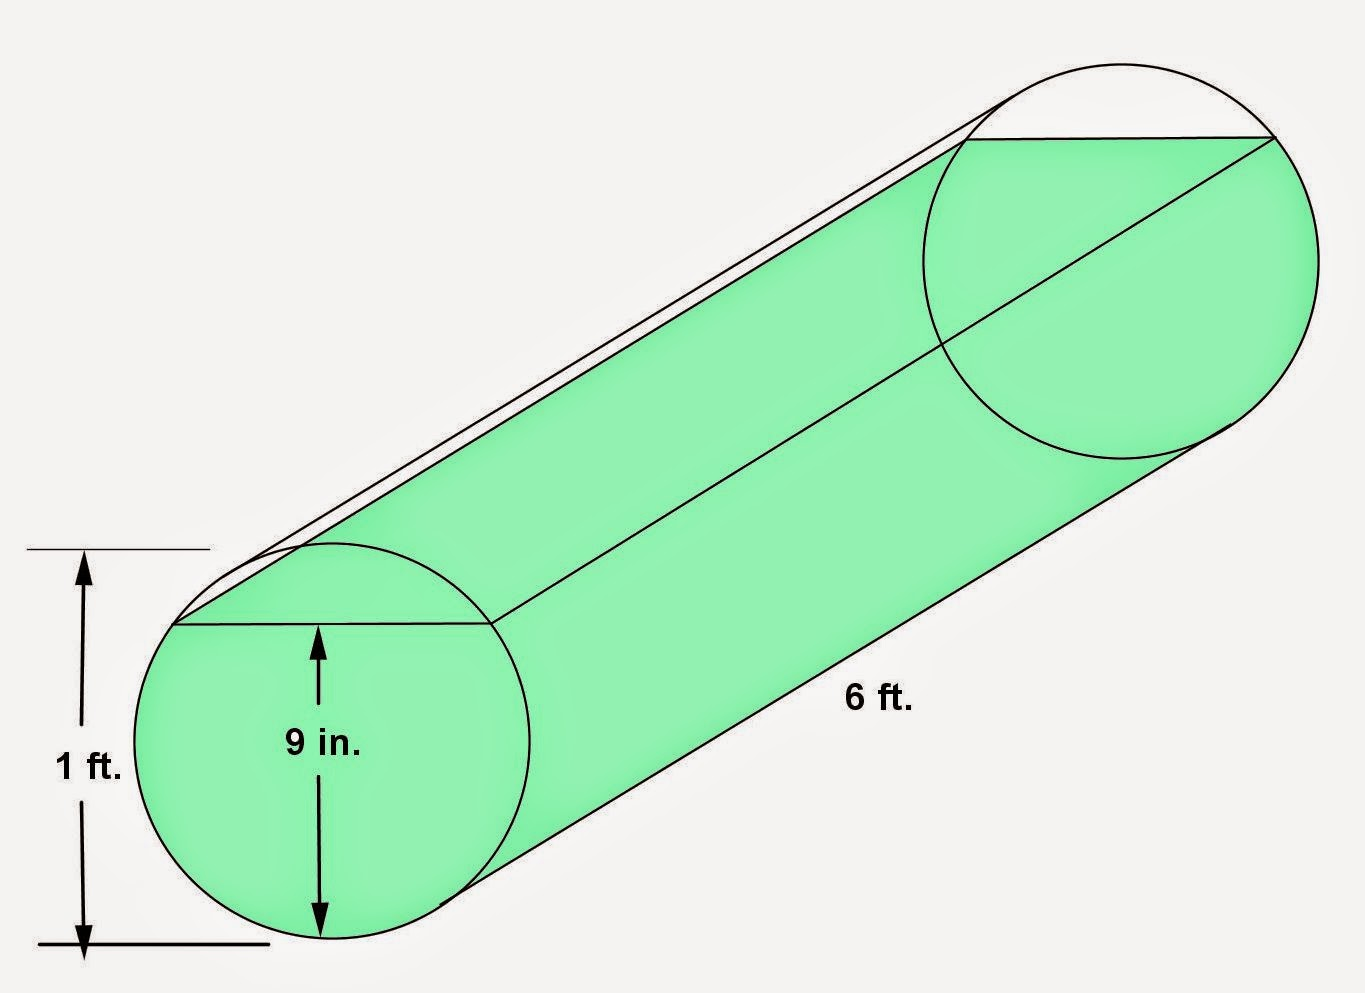 how to get the volume of a right cylinder